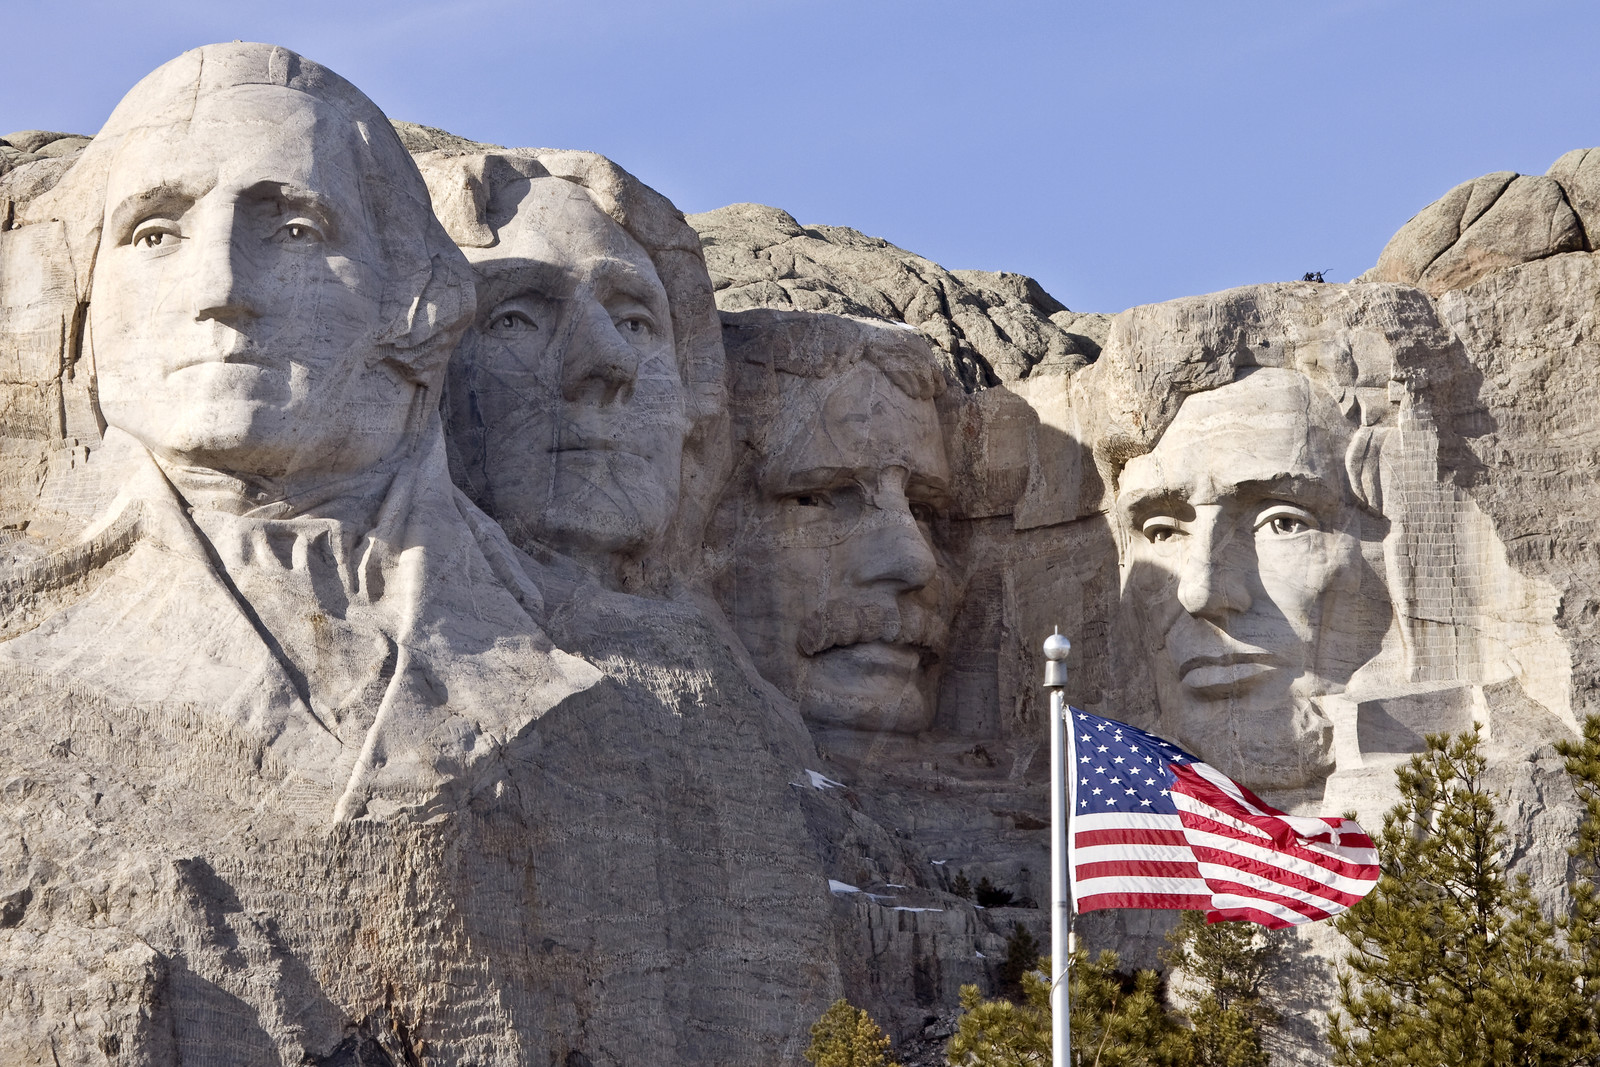 Top 5 Places To Retire in South Dakota - Mount rushmore south dakota black hills on a sunny day with the American Flag flying in front